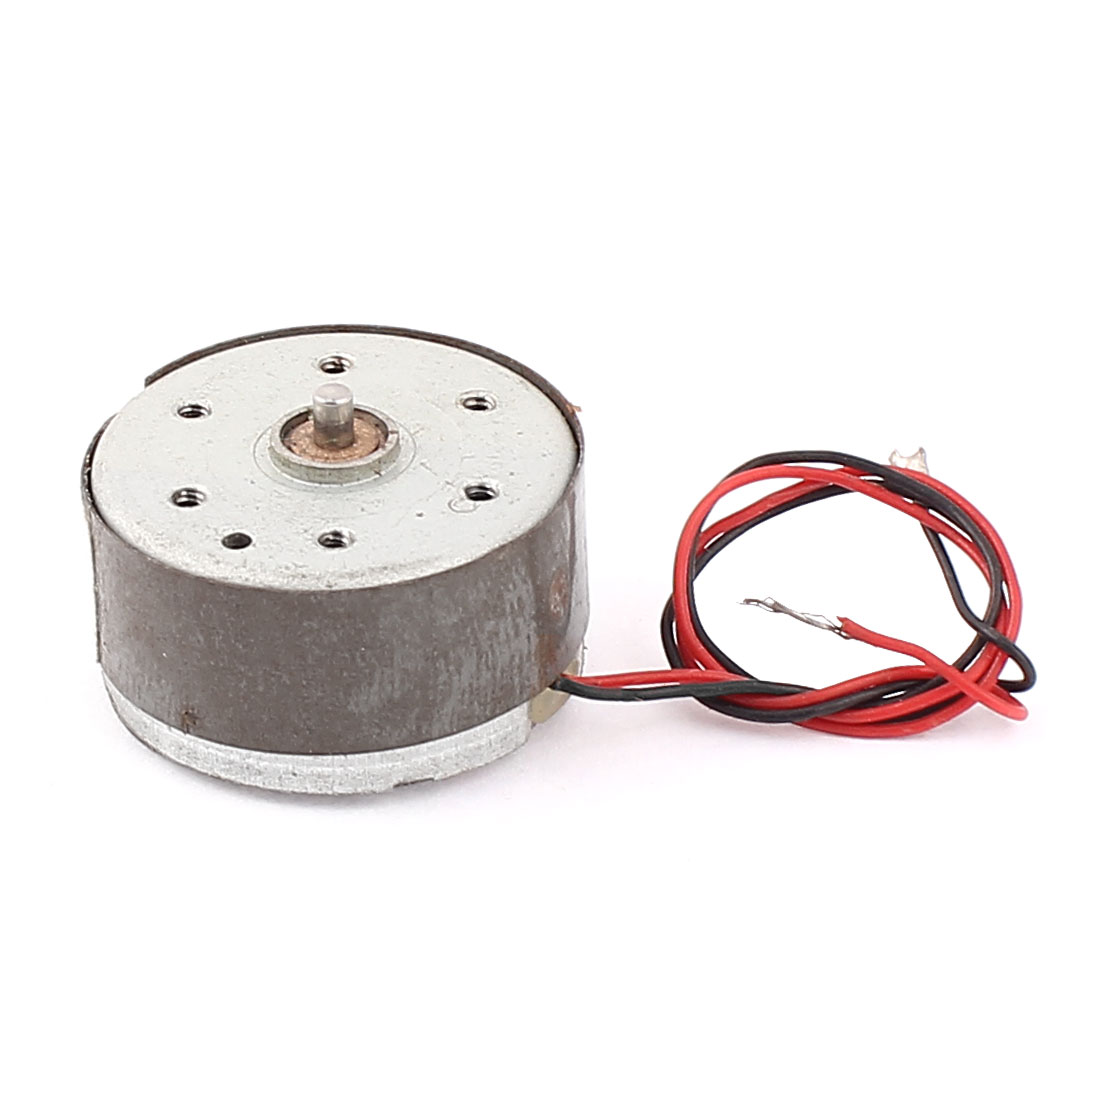 RC300 DC 3V 5000RPM Micro Motor for CD DVD Player